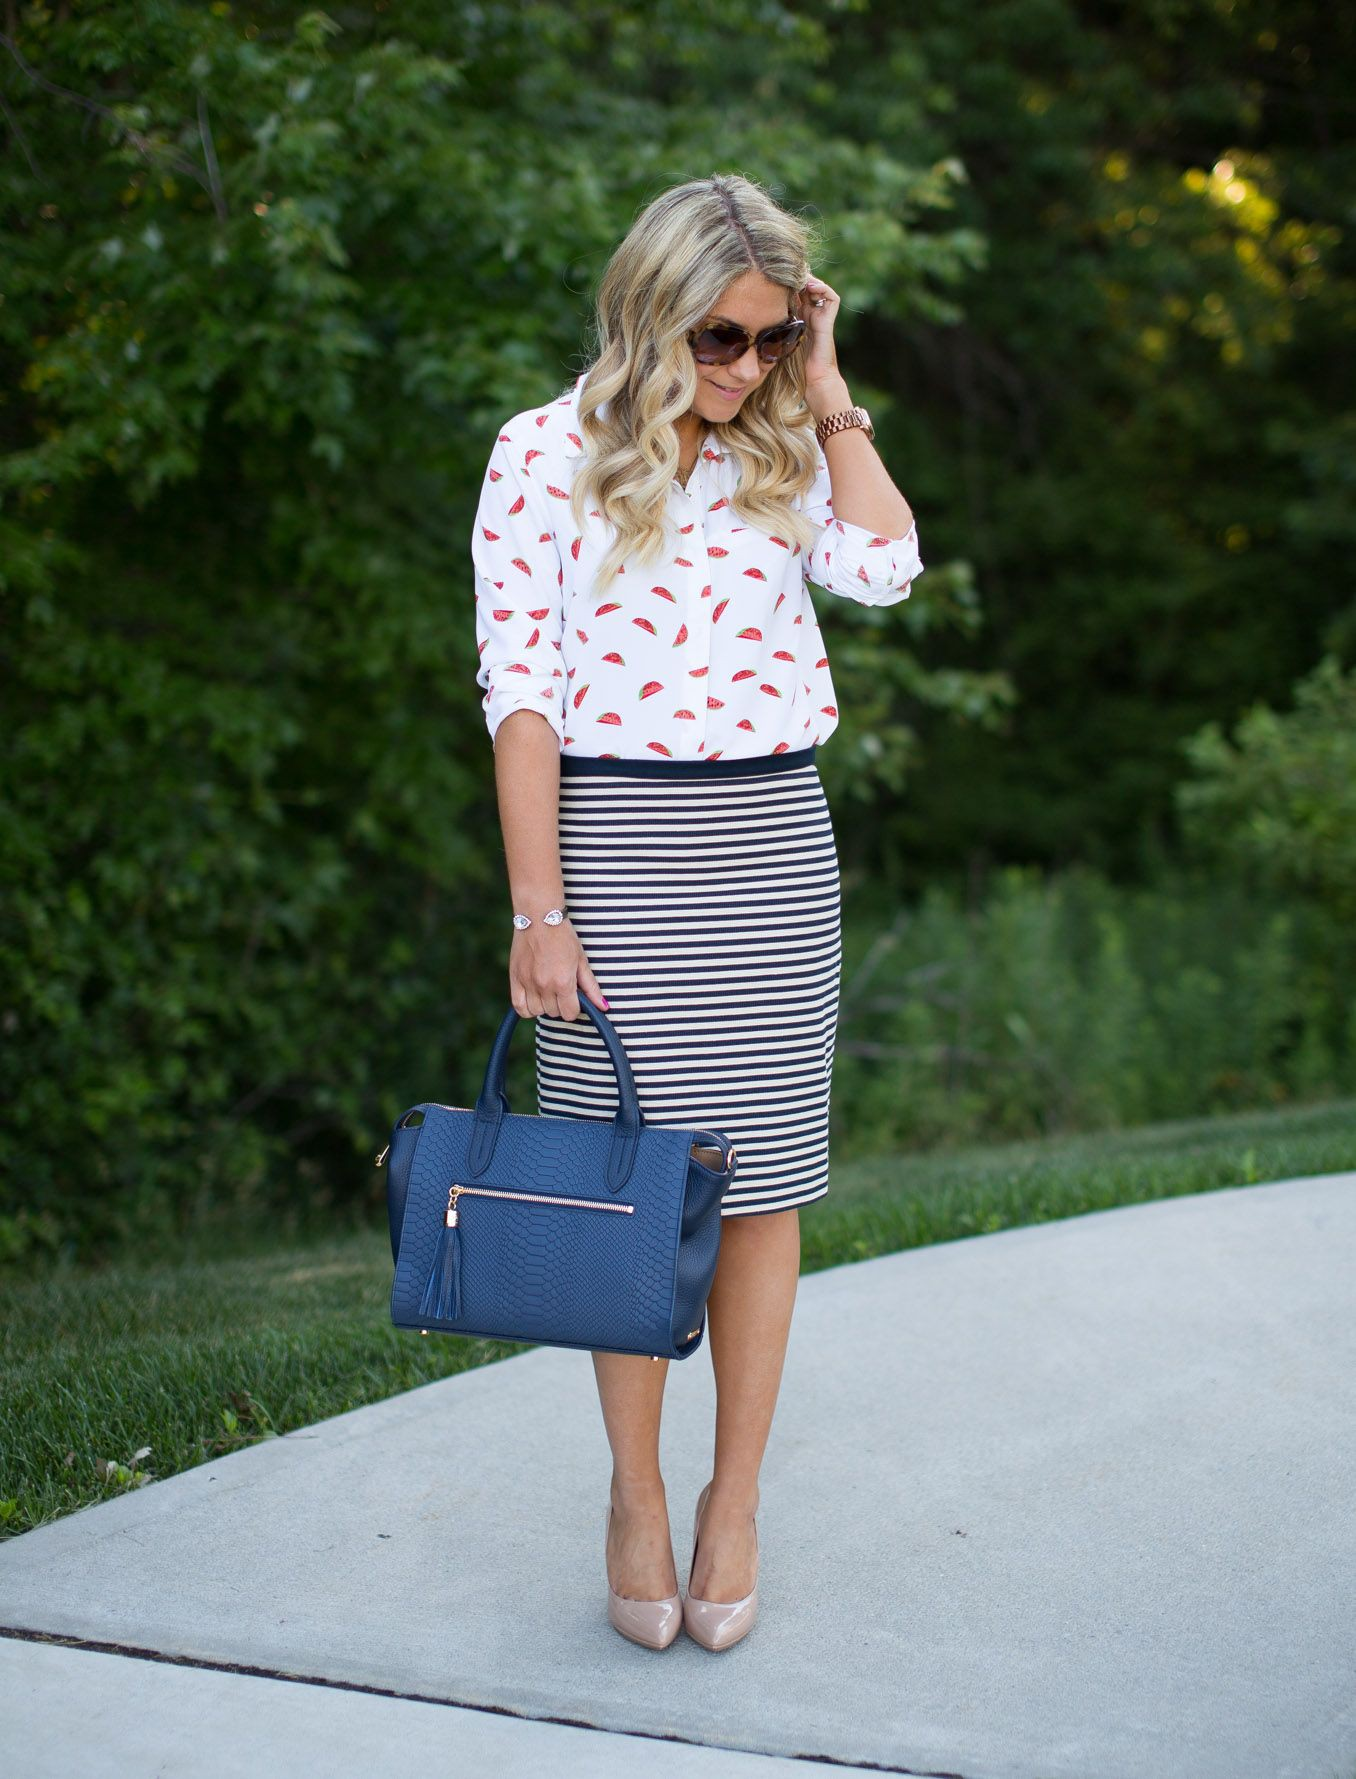 White and pink colour ideas with pencil skirt, polka dot, shorts